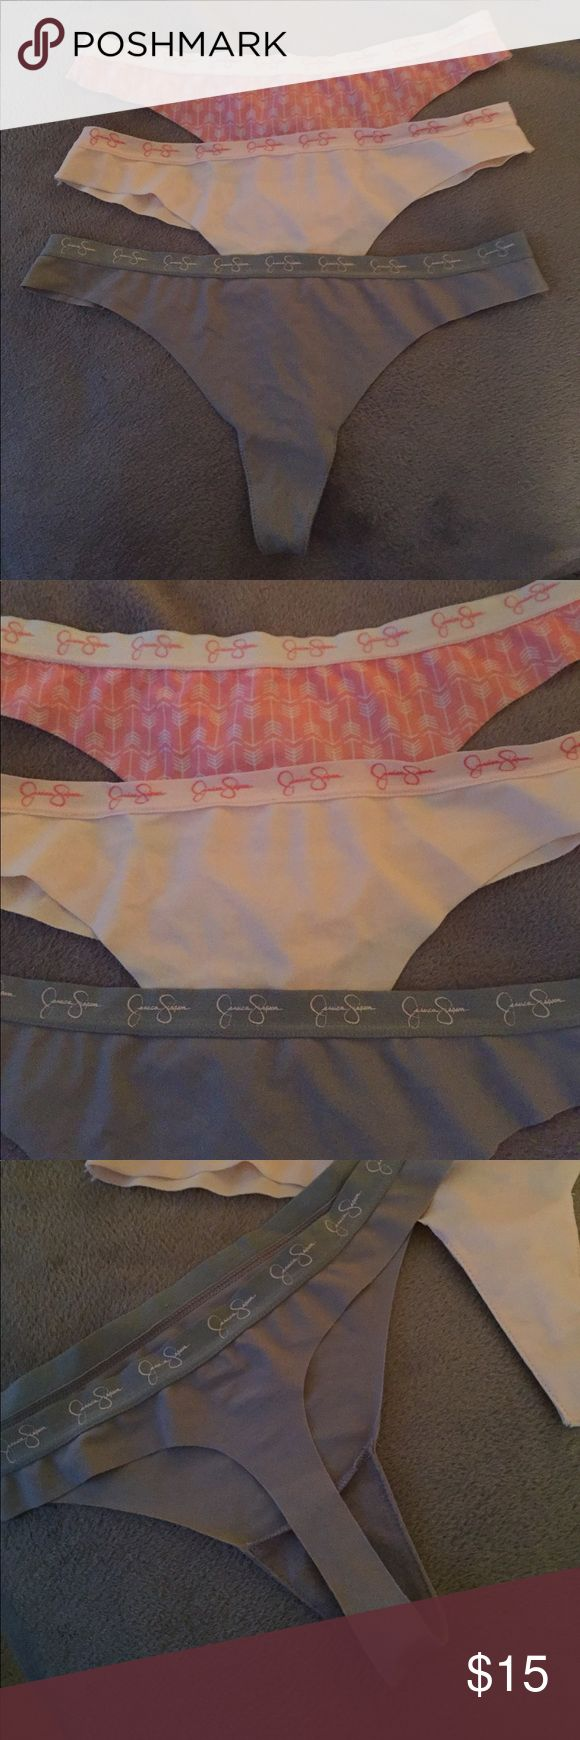 New Jessica Simpson thong panties size M/L New panties Jessica Simpson size large but to me look like a medium ..too small for me this is for all 3 pairs.. Jessica Simpson Intimates & Sleepwear Panties